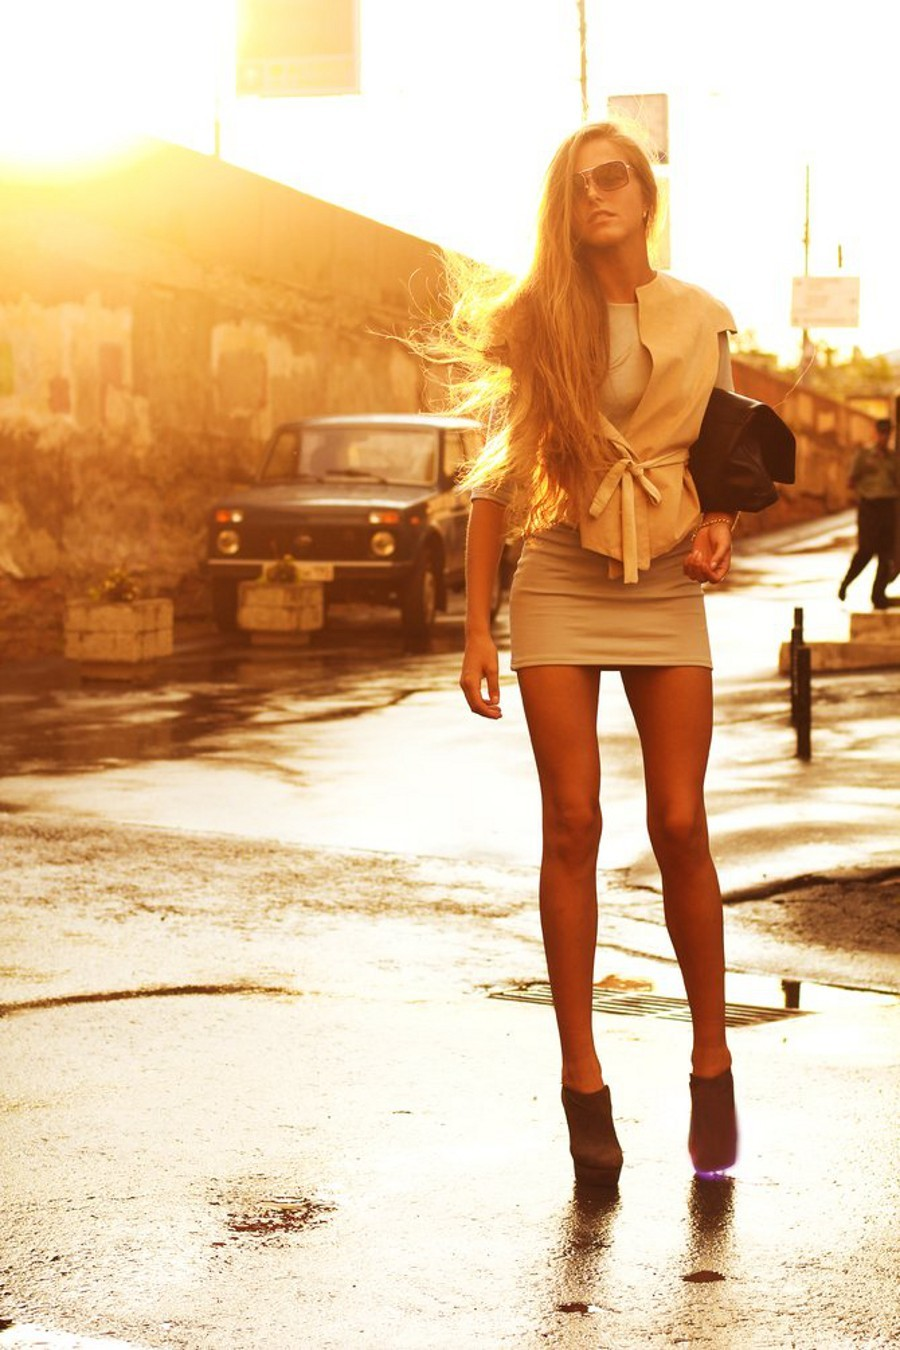 blondes legs woman long HD Wallpaper